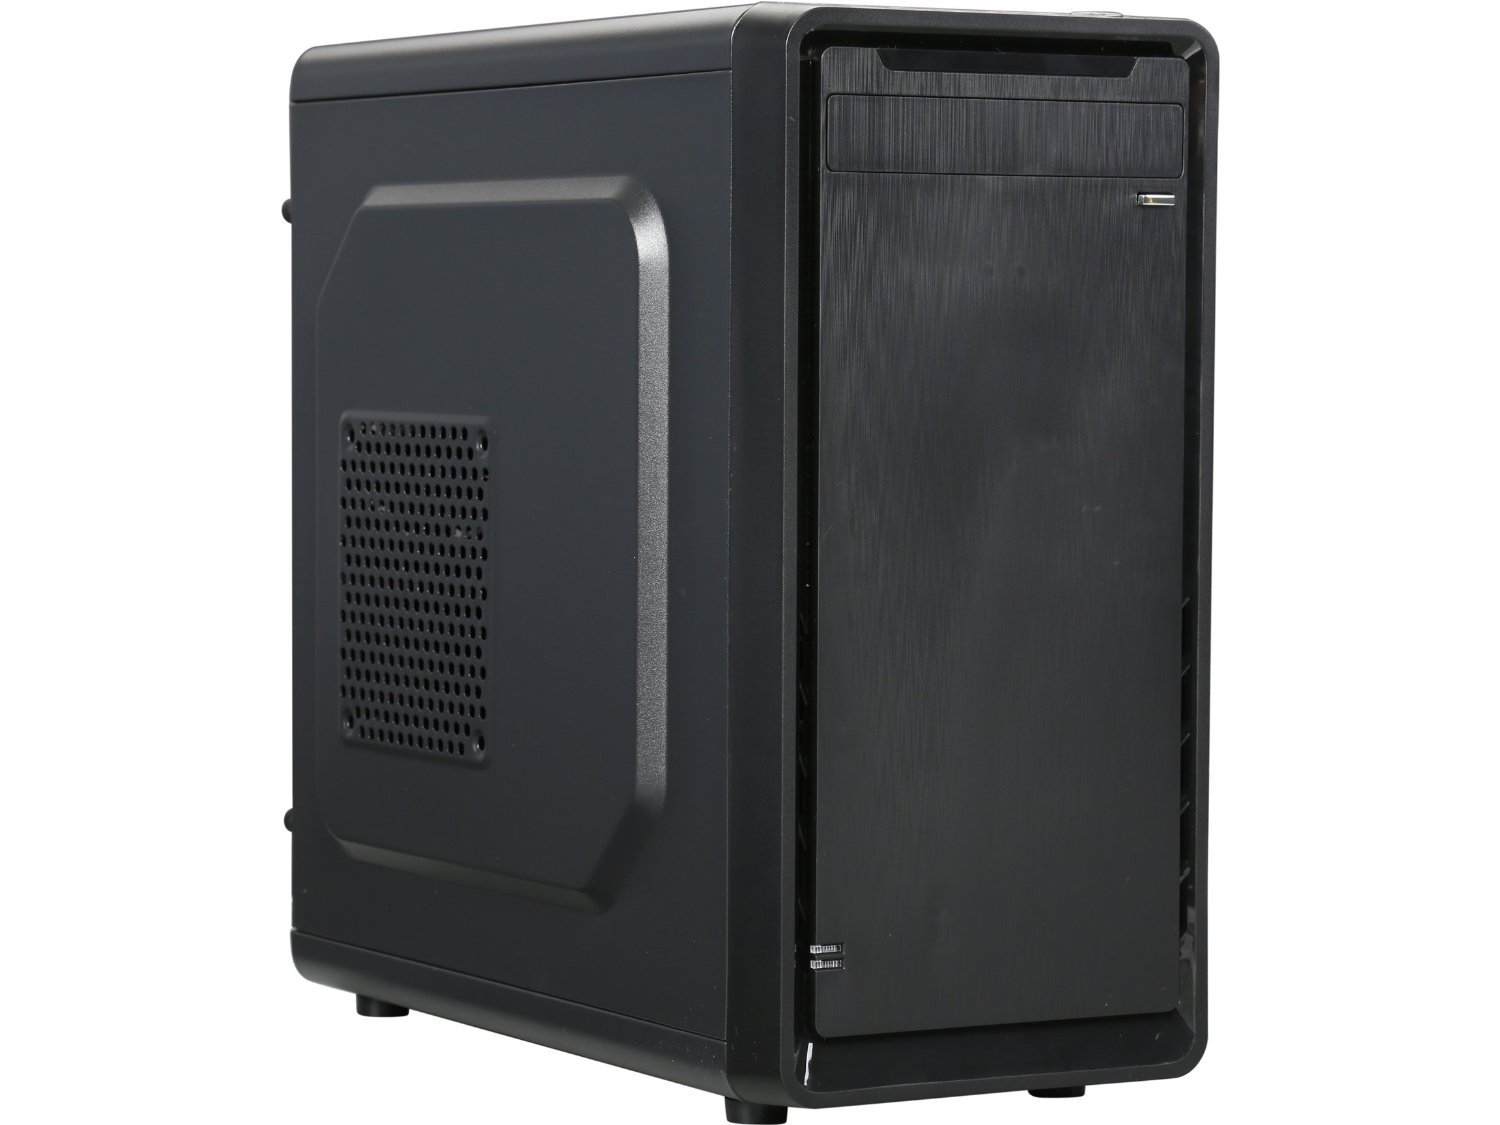 Top 10 Best Mini Gaming Pc Towers On The Market 2019 2020